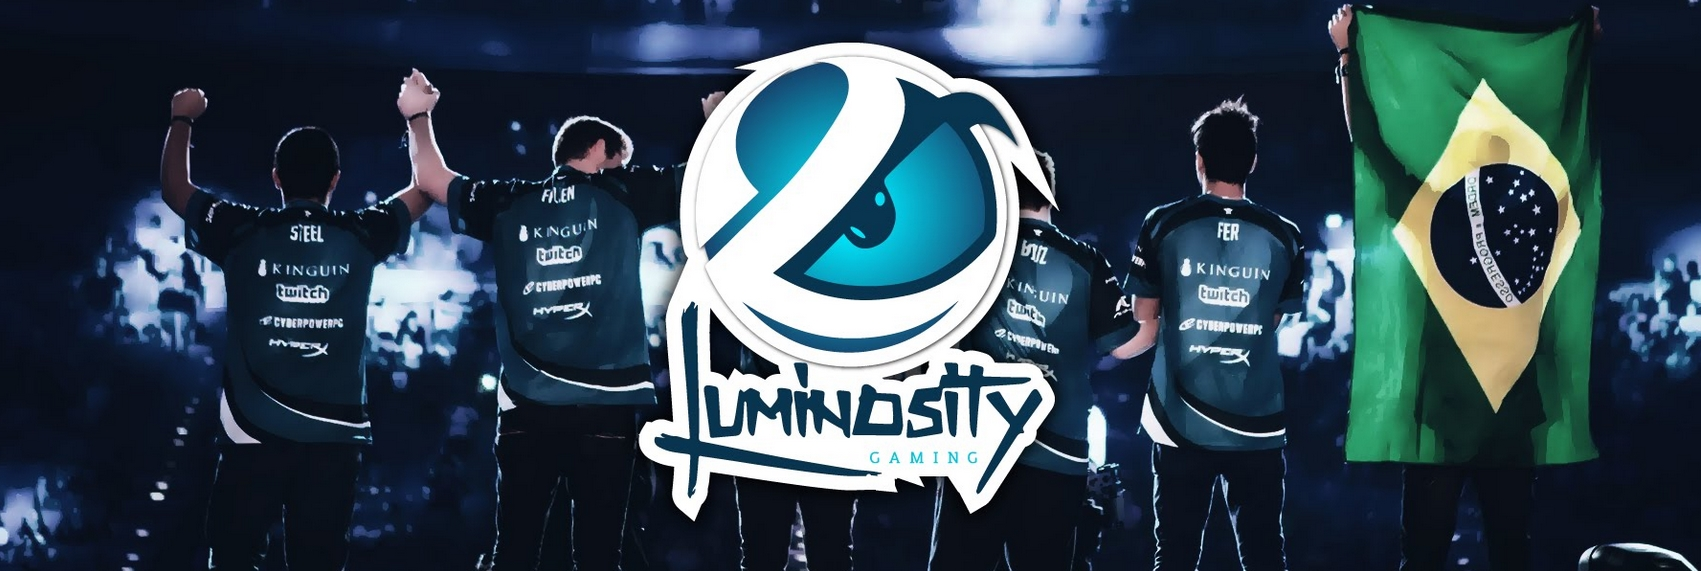 Luminosity gaming Fallen instrukcije